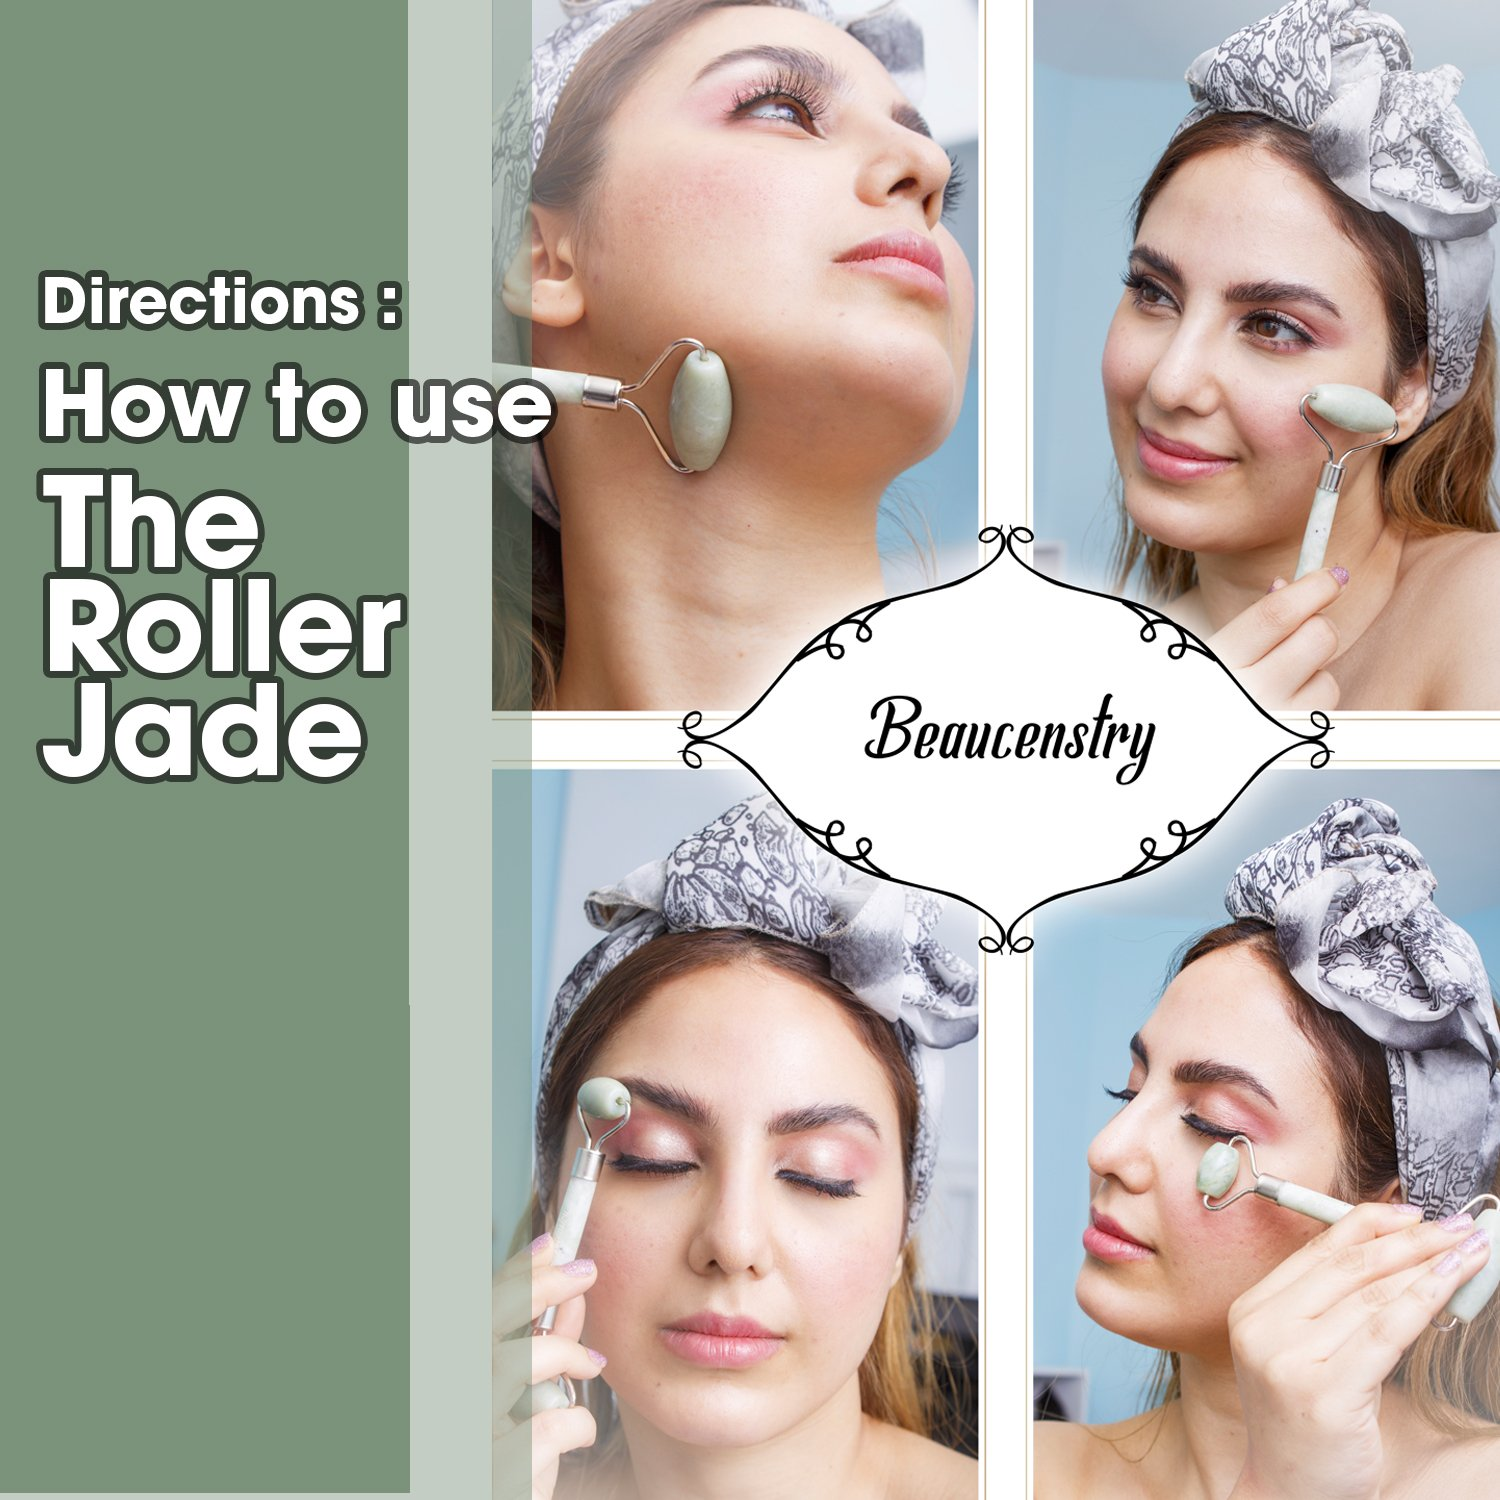 Jade Roller Face Massager Anti Aging Facial Therapy 100% Natural Jade Roller For Face Gua Sha Stone Double Neck Slimming Massager Rejuvenating Gift Boxed + Extra Gift Included by Beaucenstry (Image #5)